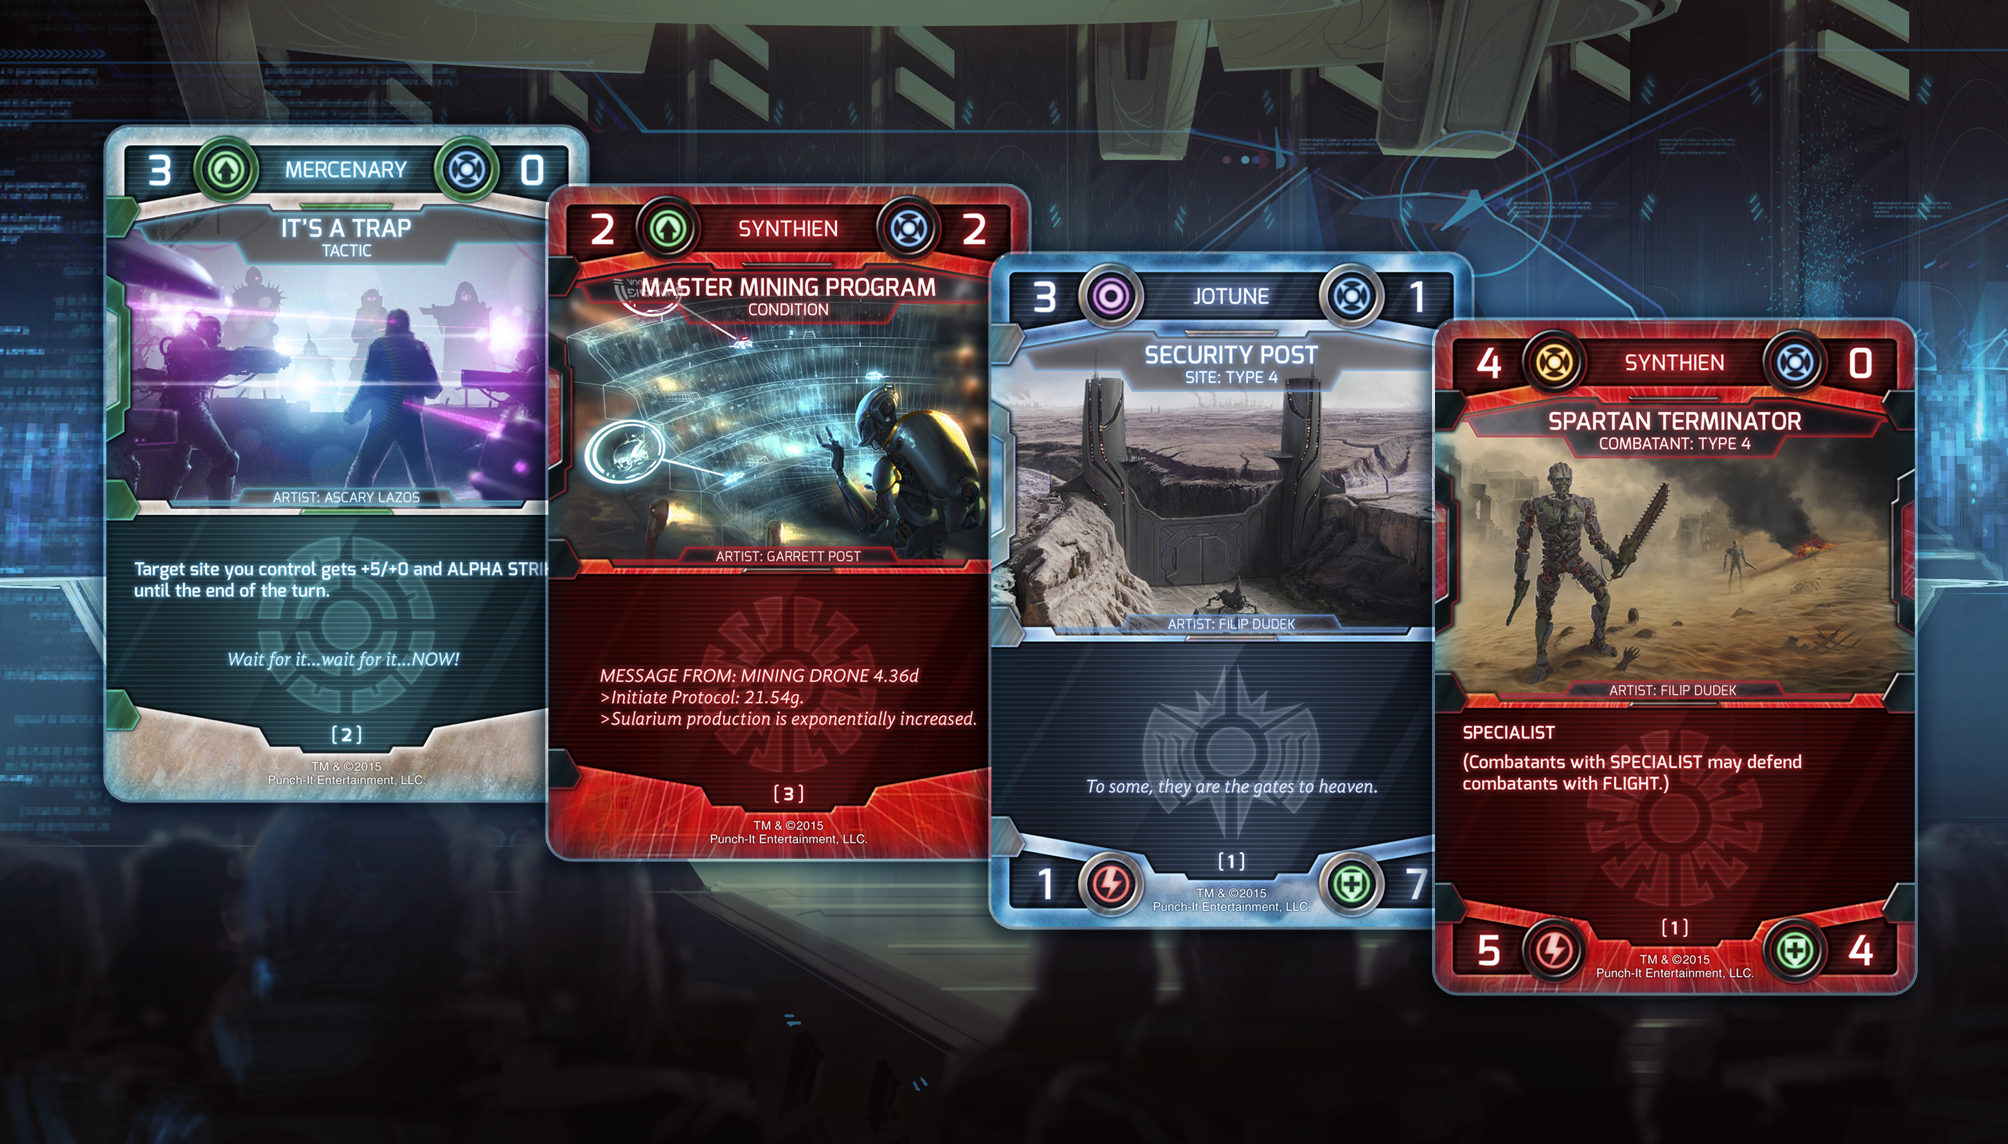 The four card types: Tactics, conditions, sites, and combatants